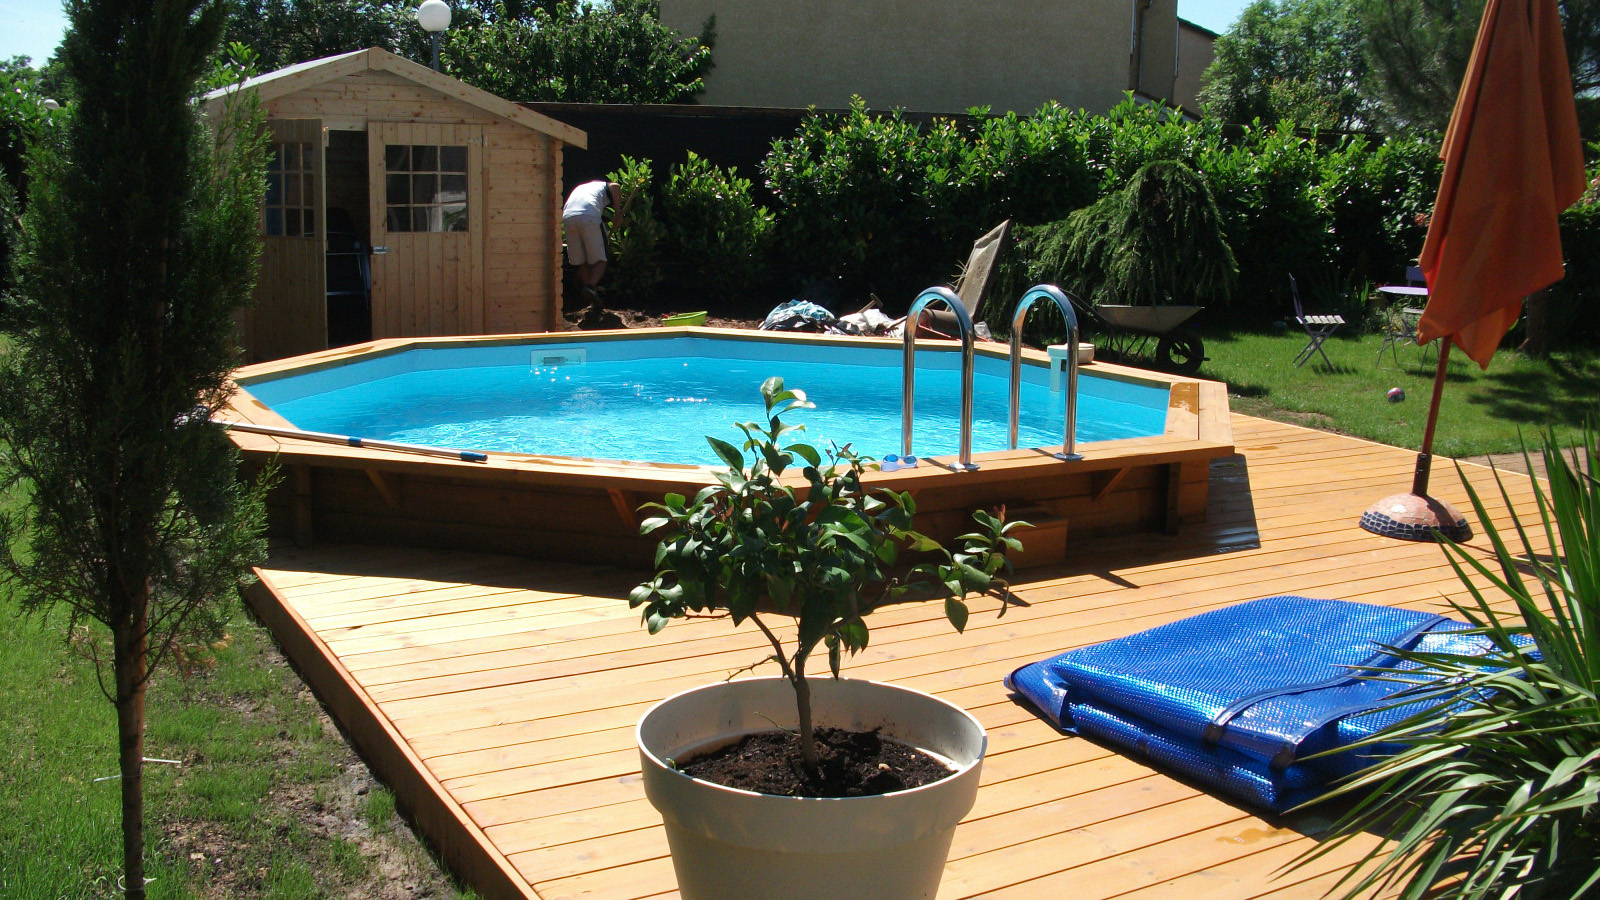 Piscine hors sol avec terrasse bois great lame de for Piscine semie enterree bois